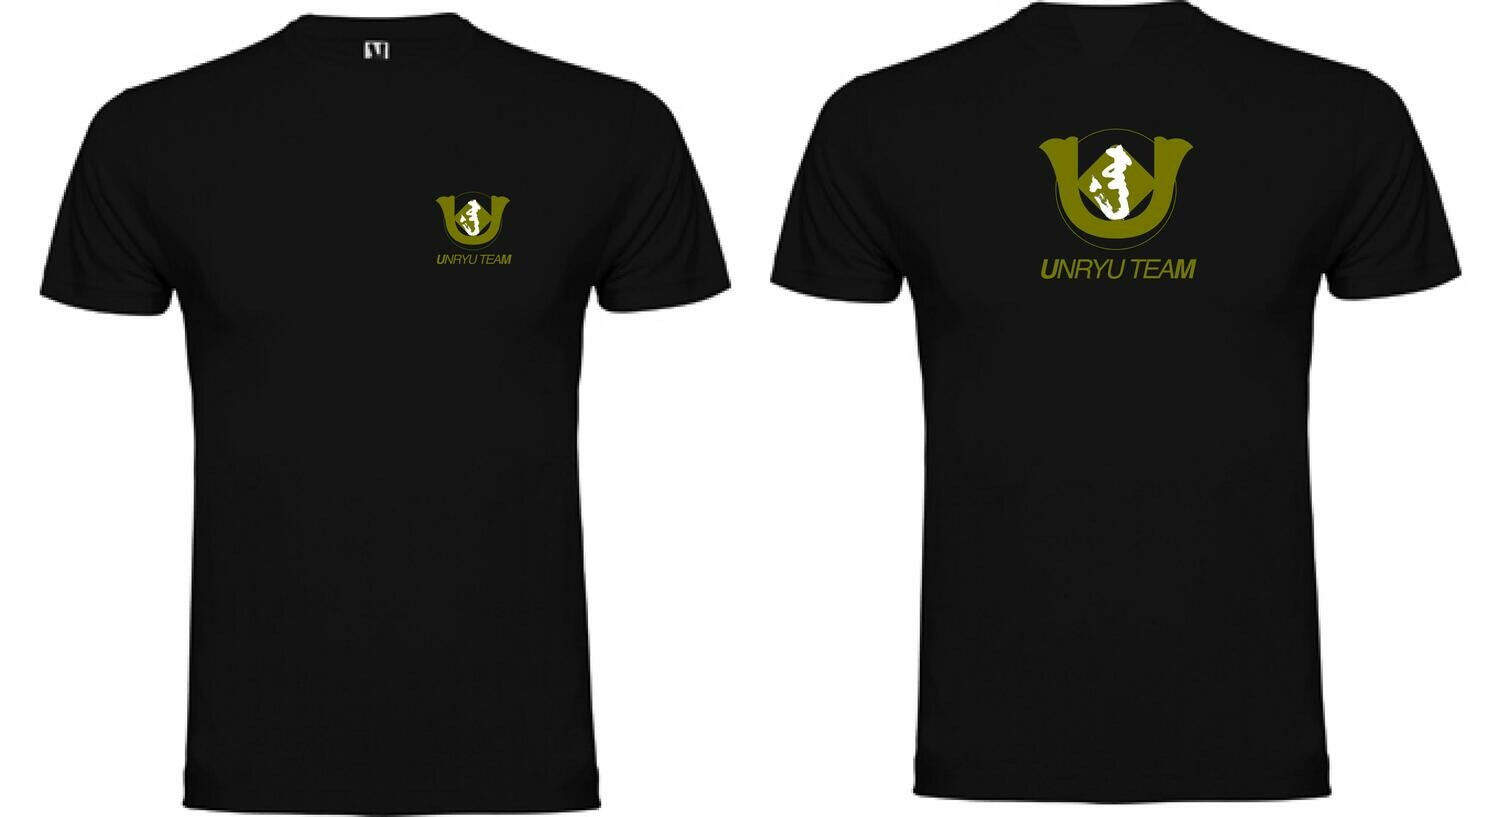 Camiseta Unryu team